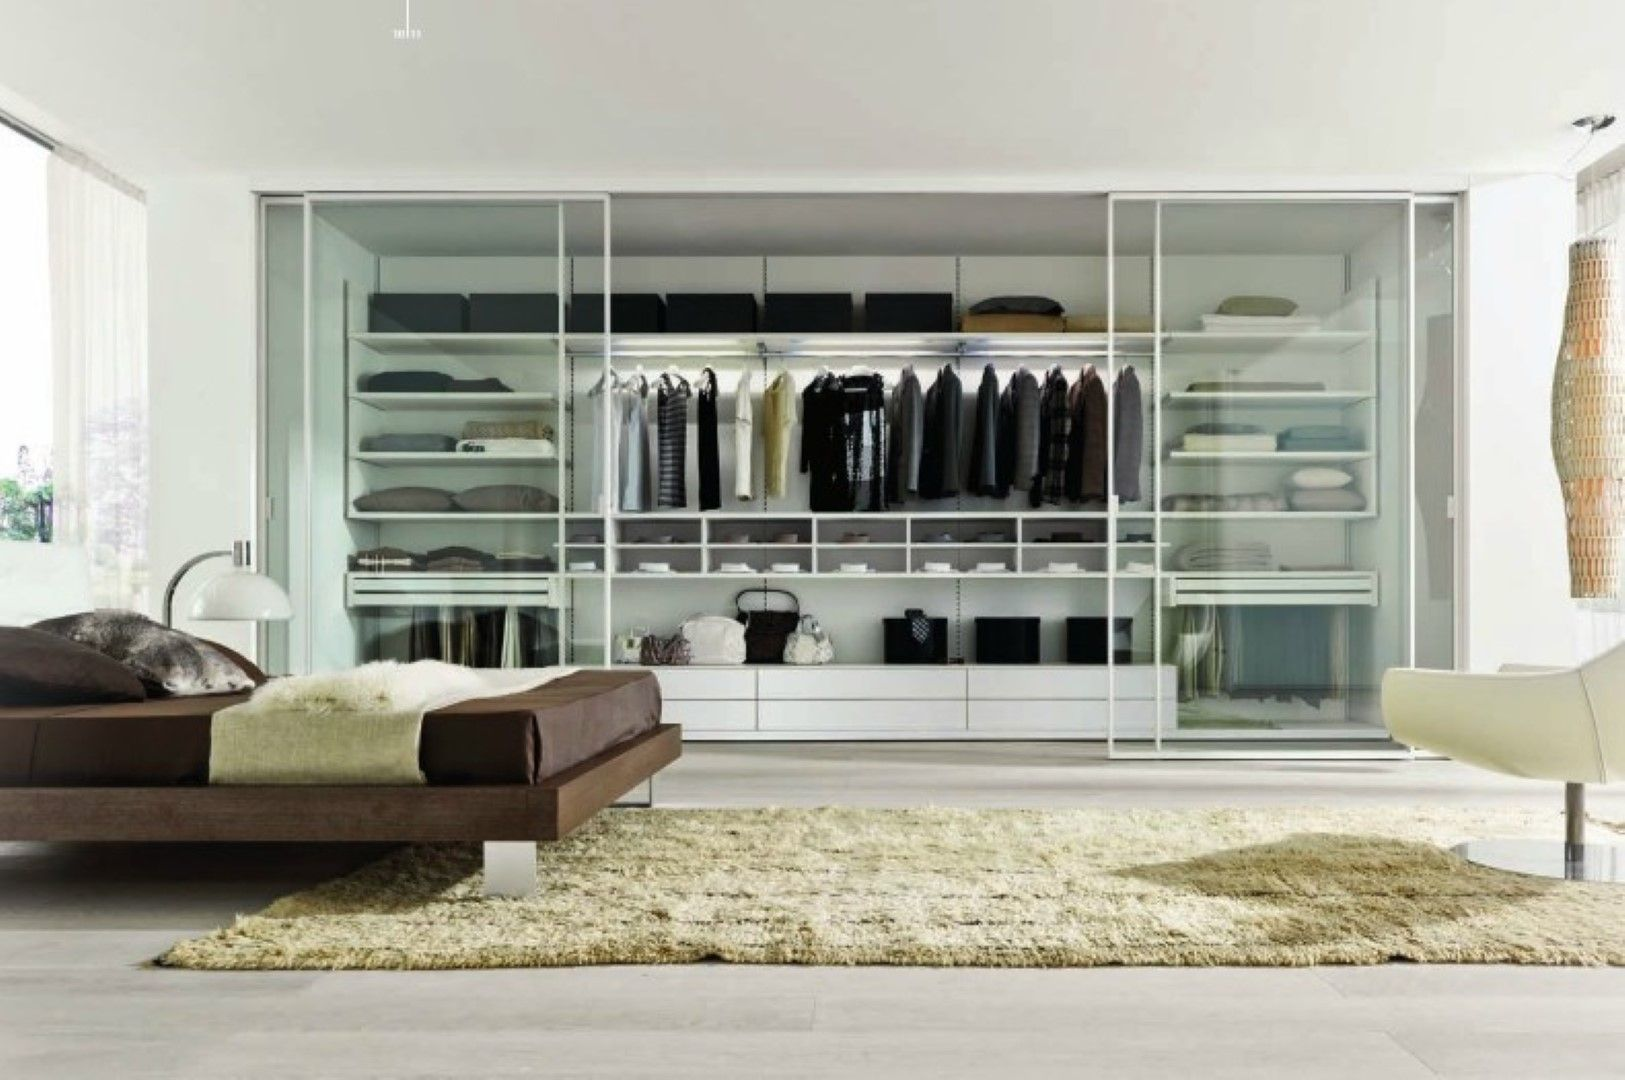 The Major Advantage Is That Such Made To Measure Wardrobes Maximize The Storage Capacity Along With Mak Luxury Bedroom Design Closet Designs Luxurious Bedrooms